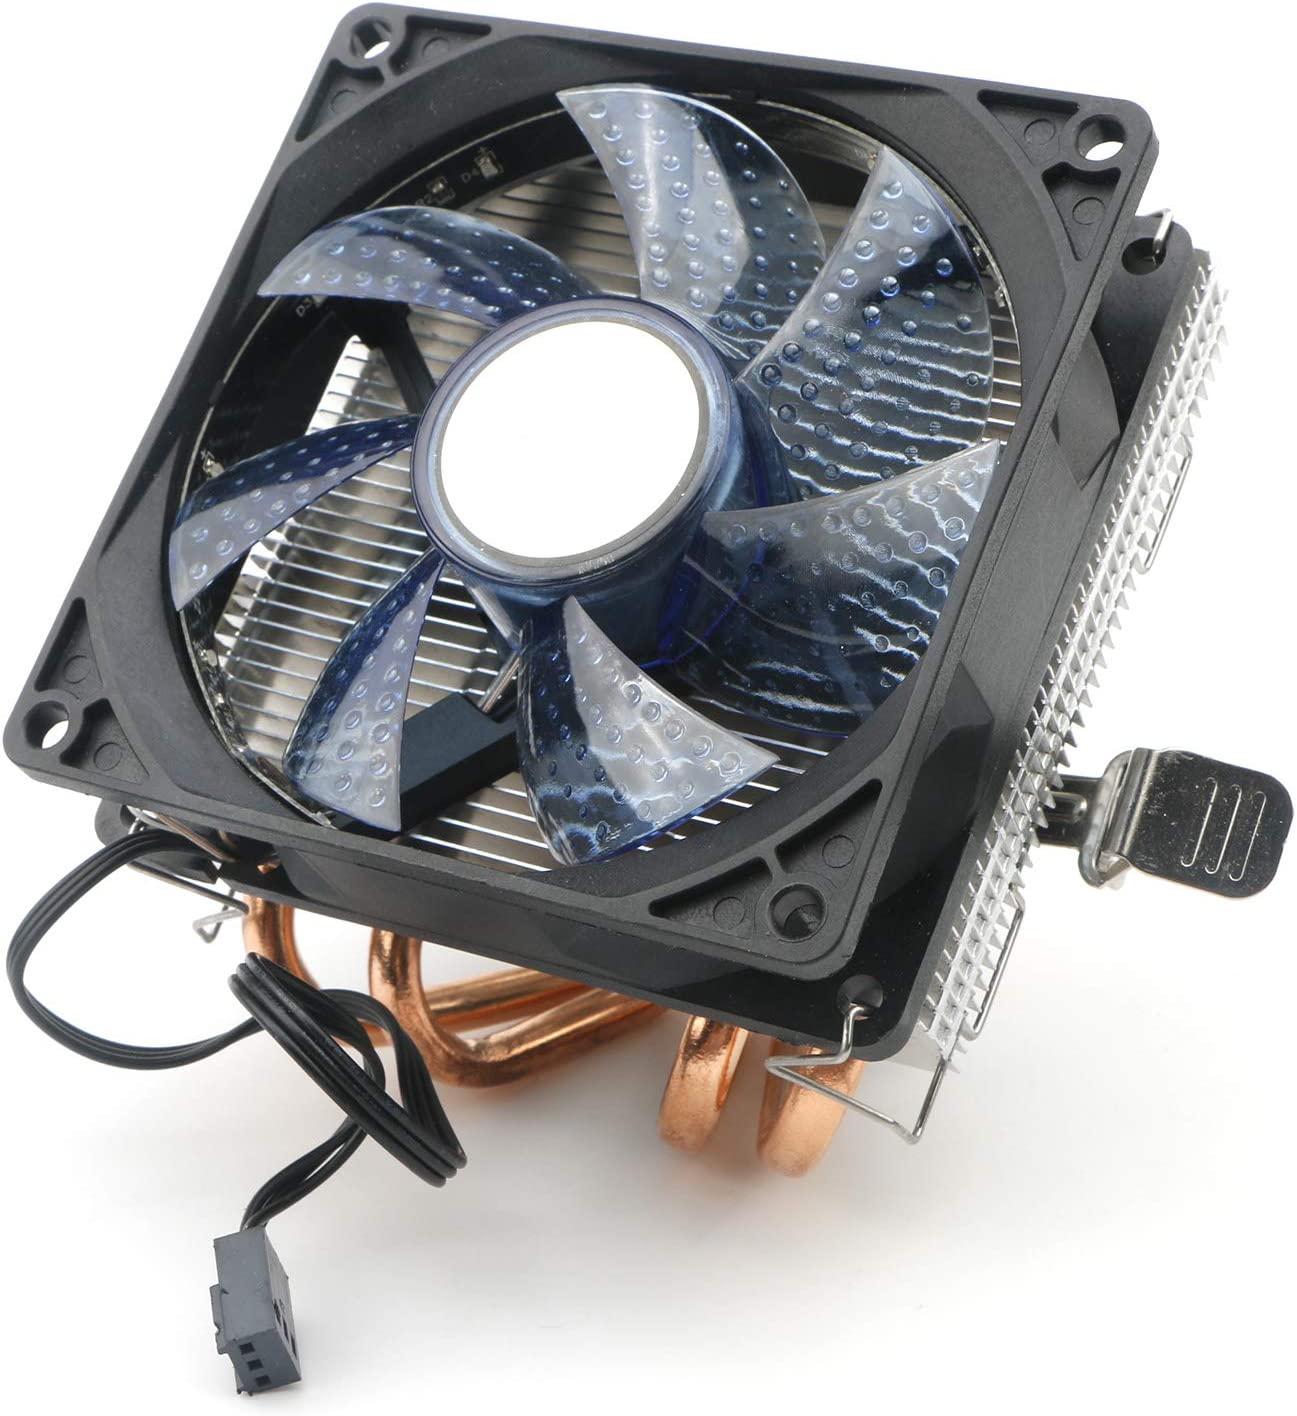 JIUWU CPU Air Cooler 3-Pin Ventilador con 2 Heatpipes Radiador LED ...